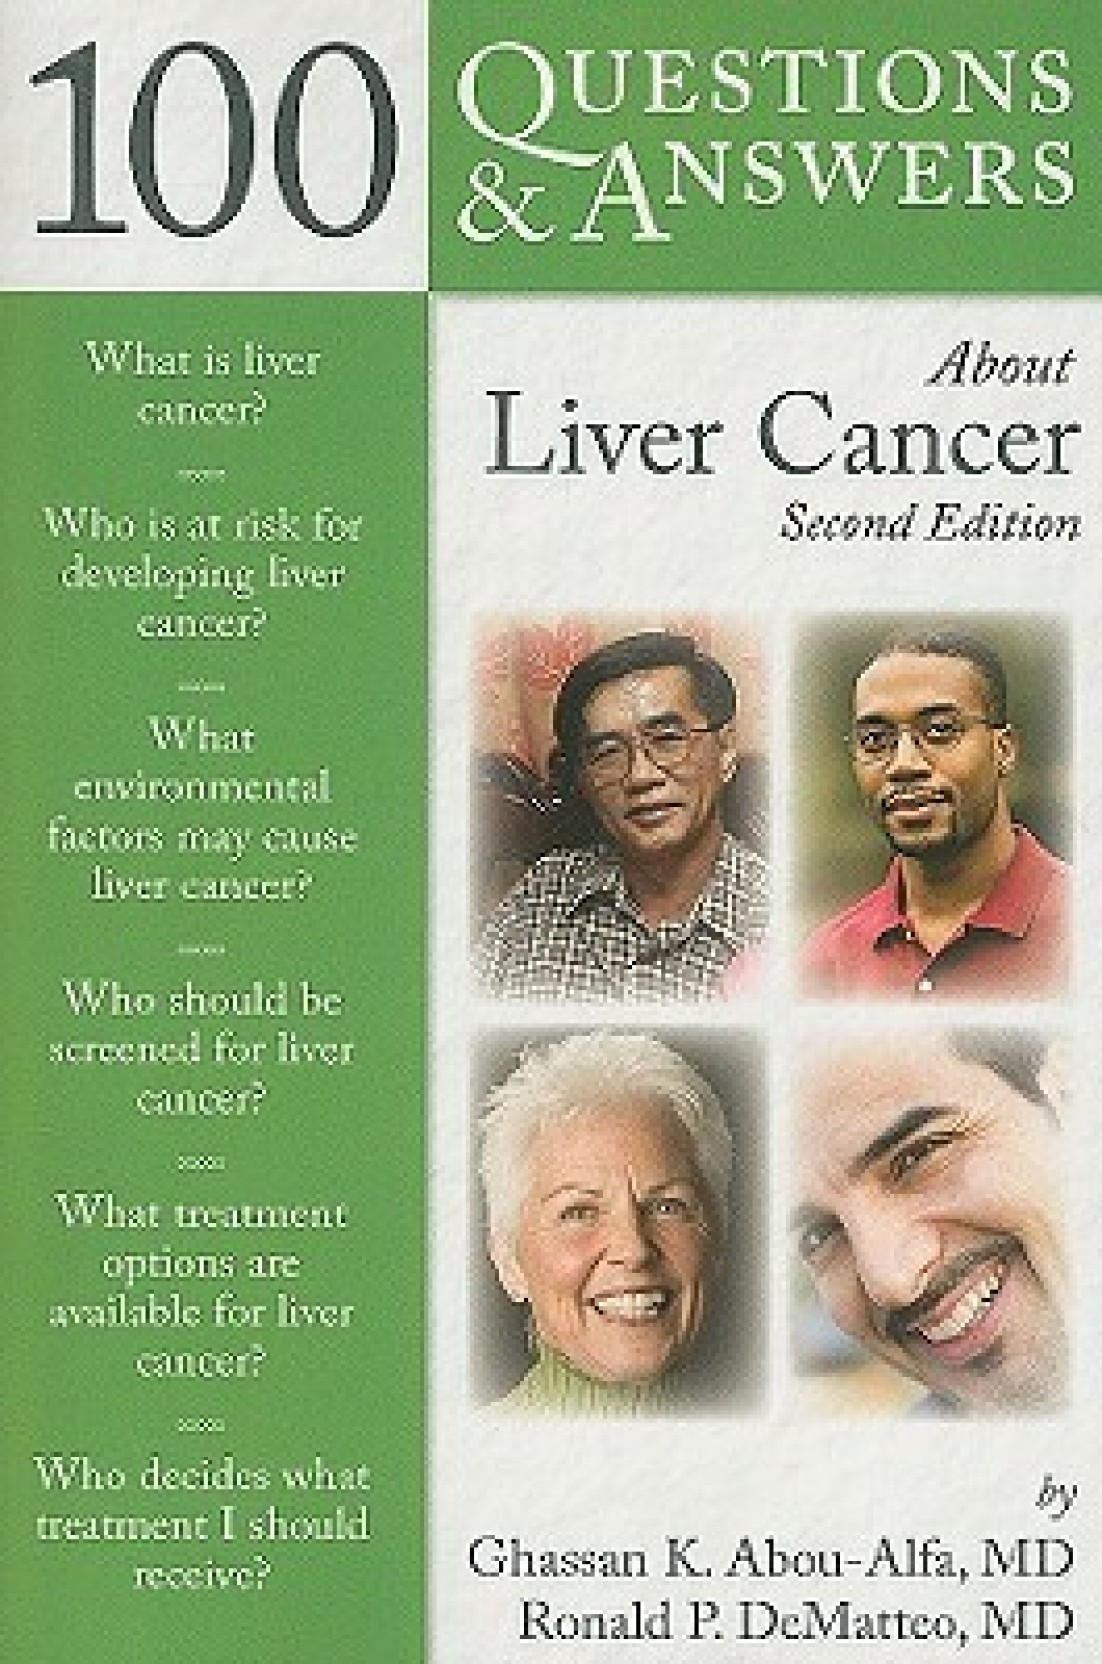 100 Questions & Answers About Liver Cancer 2 Edition. ADD TO CART